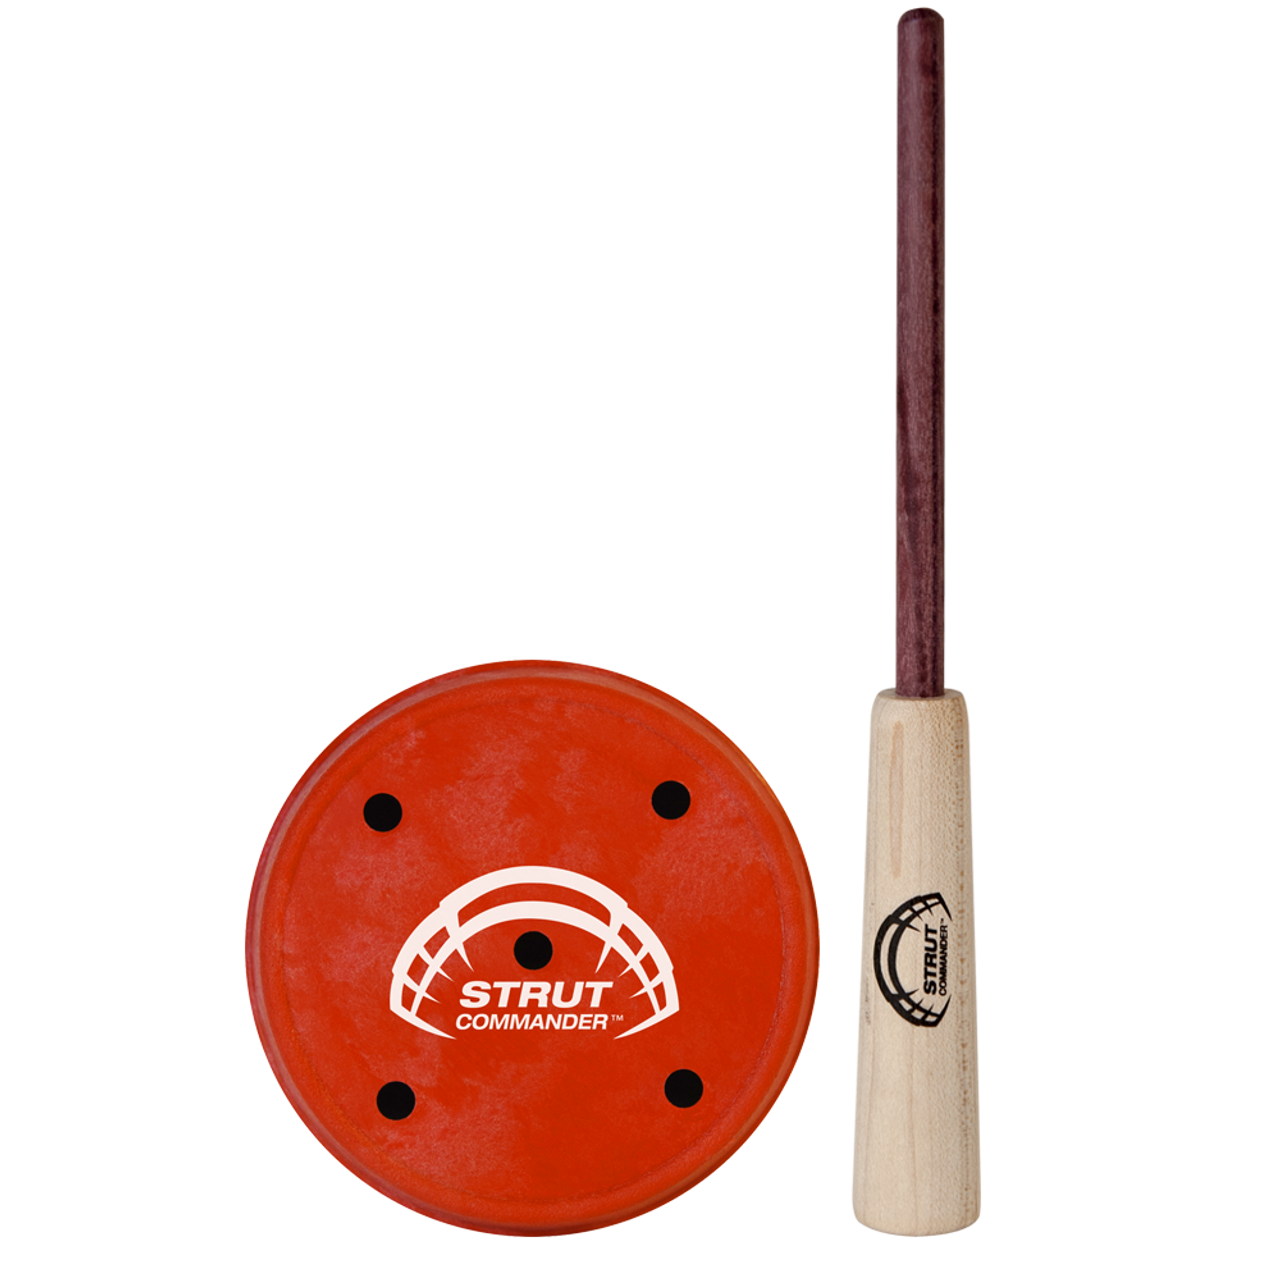 Red polycarbonate pot with the Strut Commander turkey fan logo screen printed in white on the back.